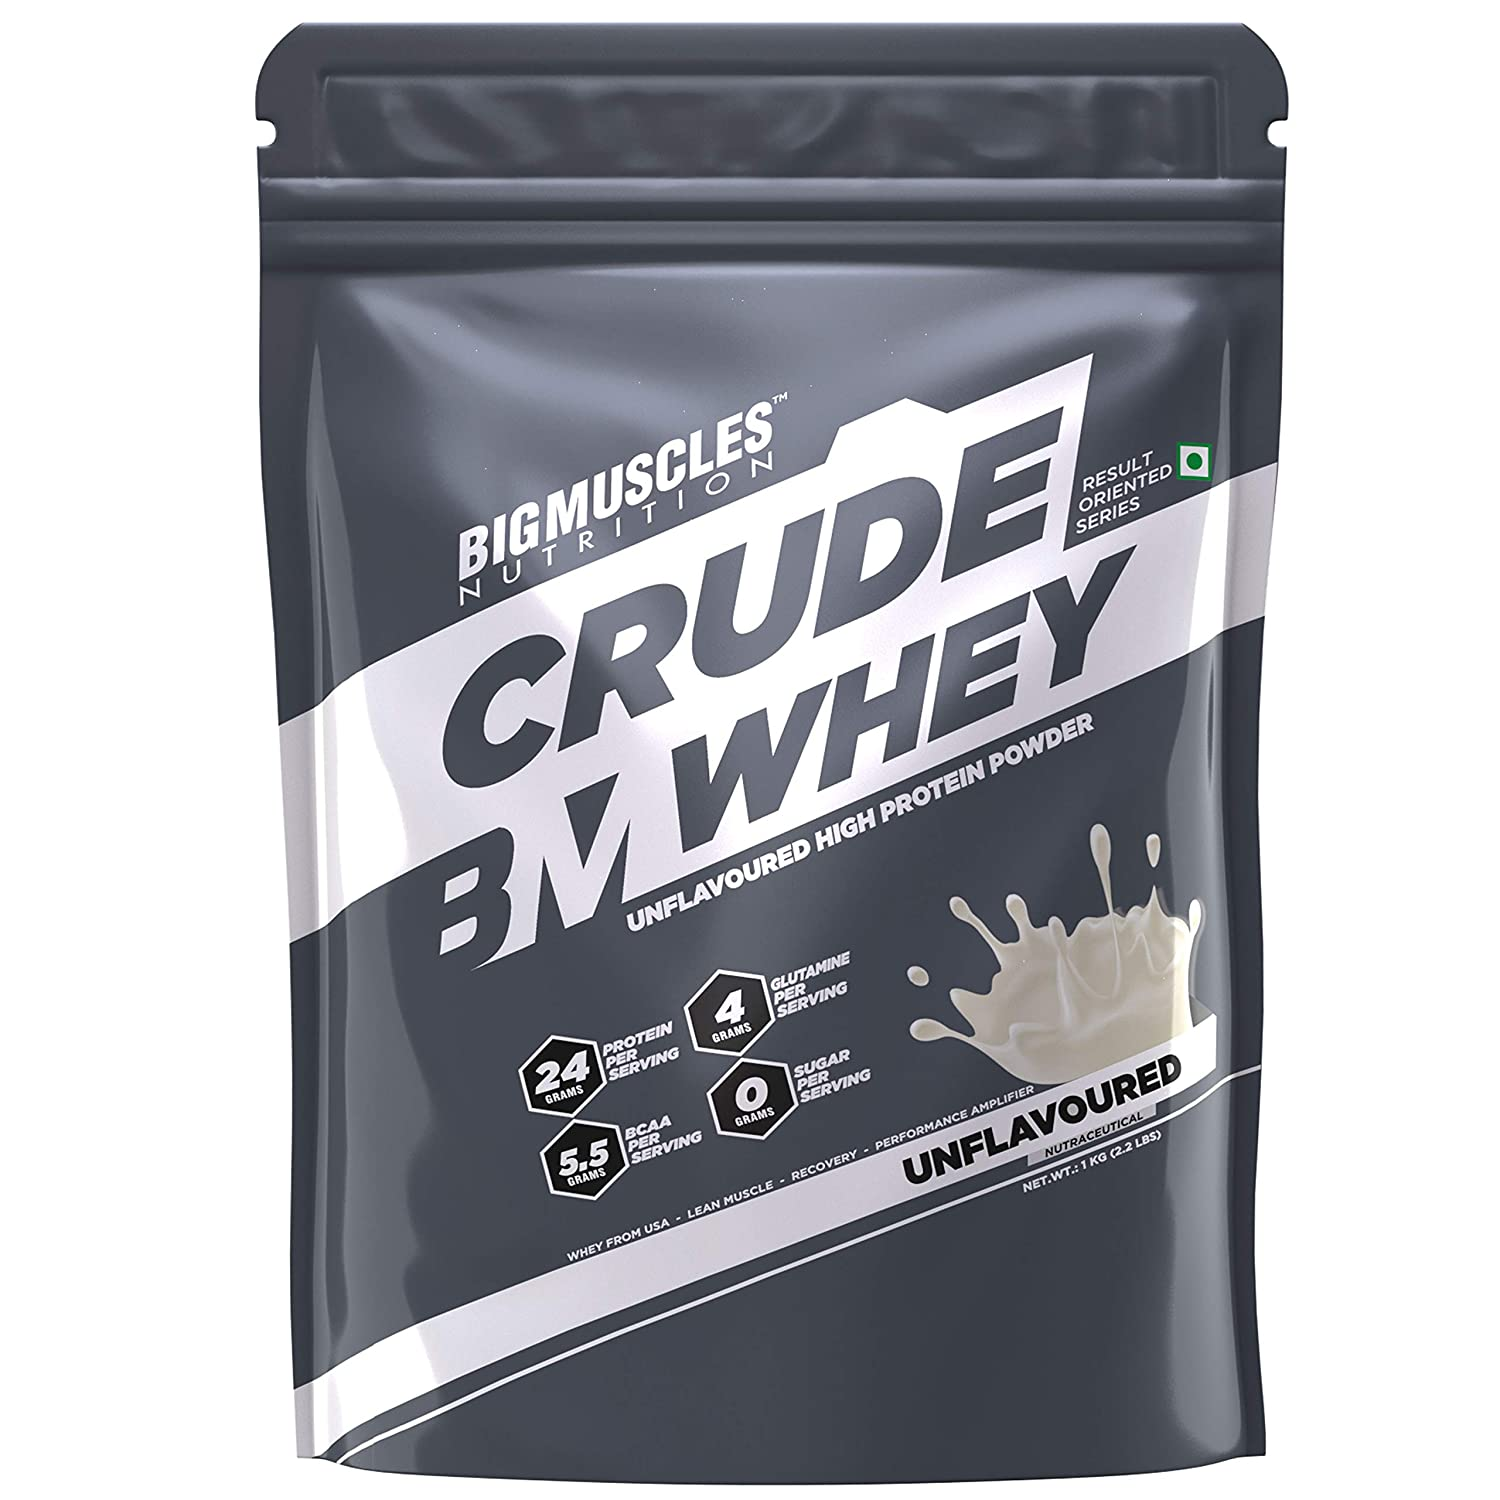 Bigmuscles Nutrition 24g Protein, 5.5g BCAA, 4 g Glutamine Crude Whey $11.58 Coupon